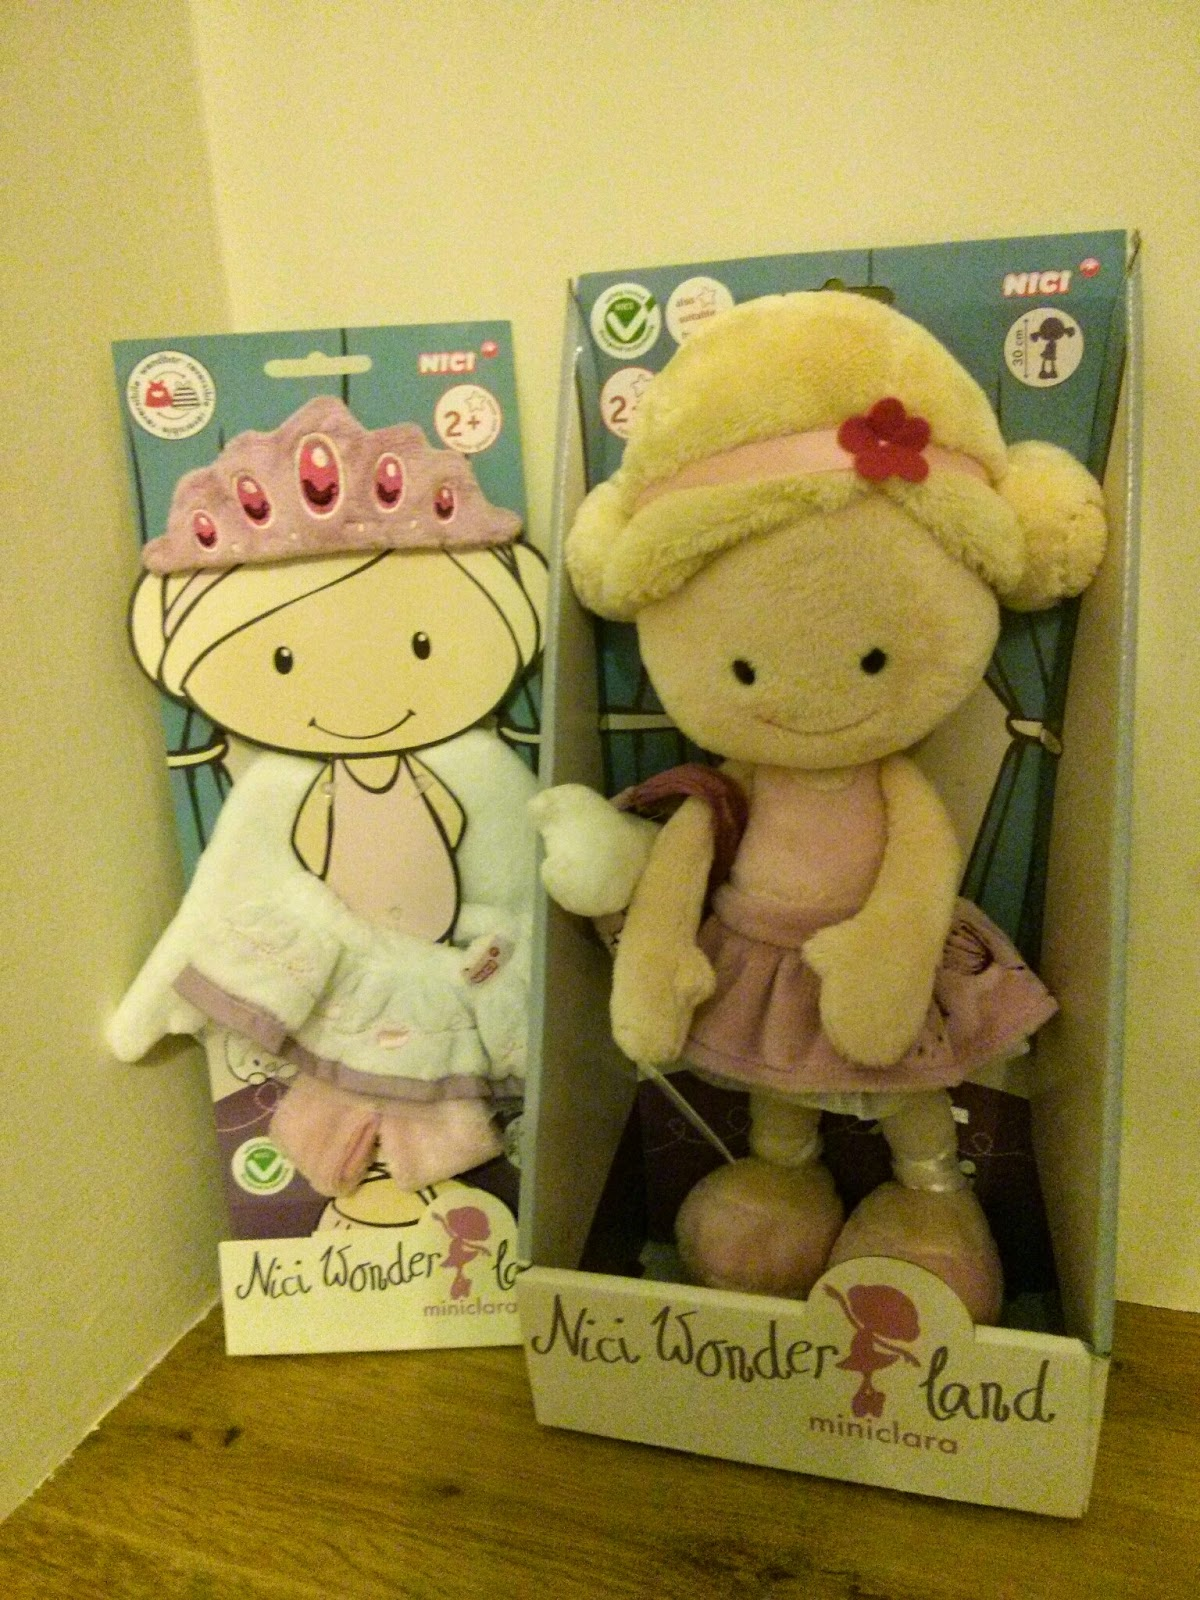 NICI mini clara Wonderland